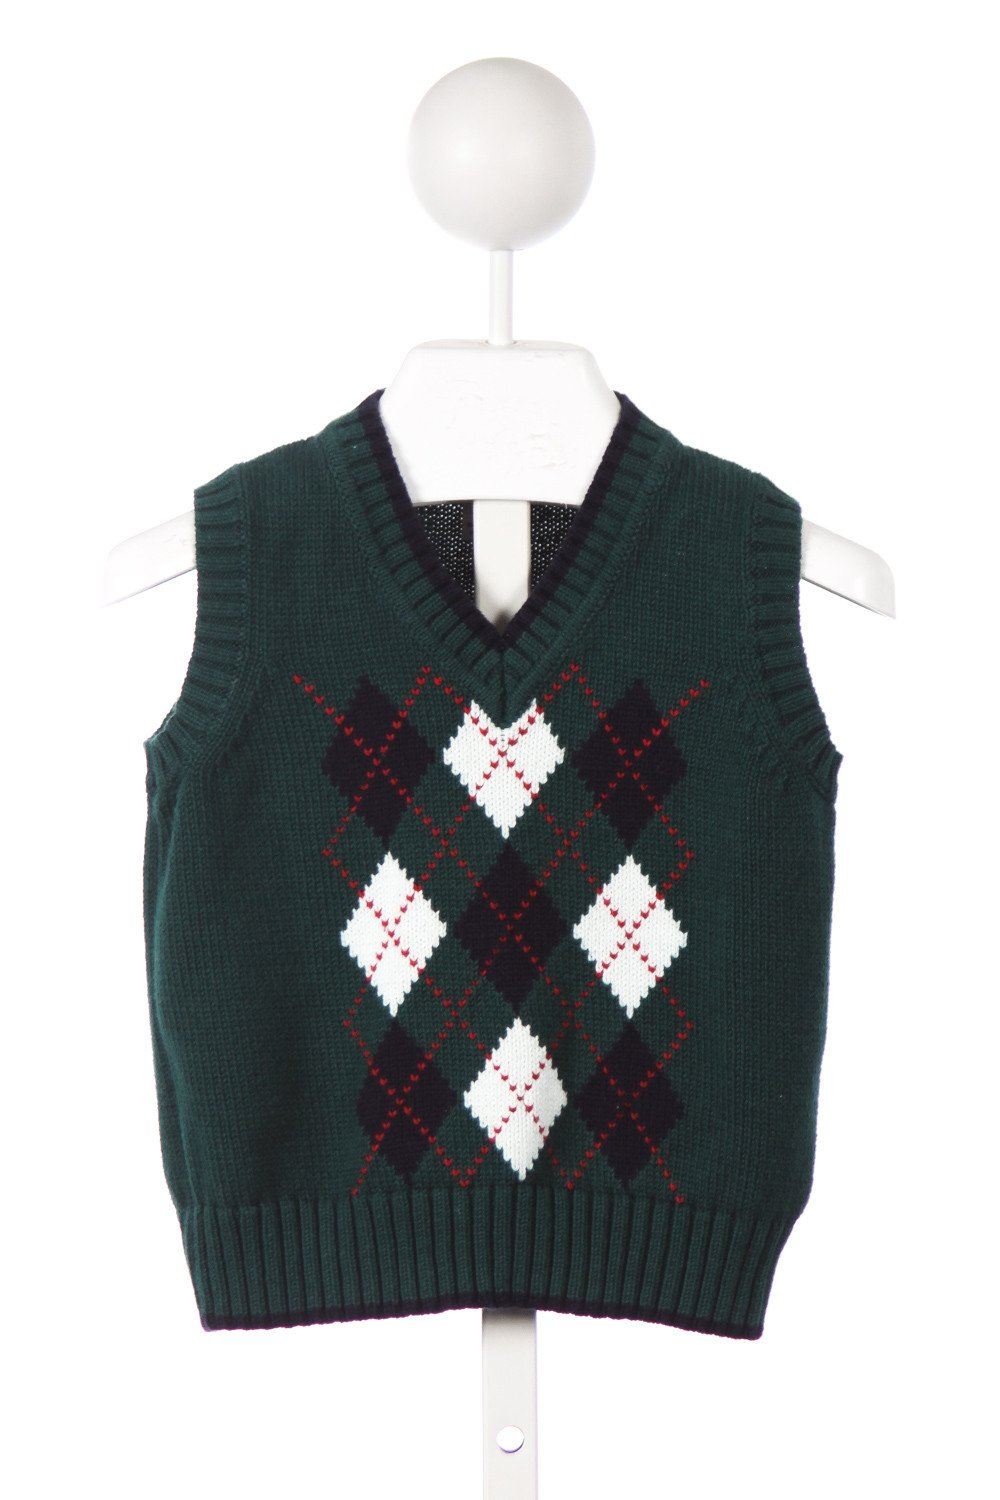 KITESTRINGS GREEN AND NAVY ARGYLE SWEATER VEST